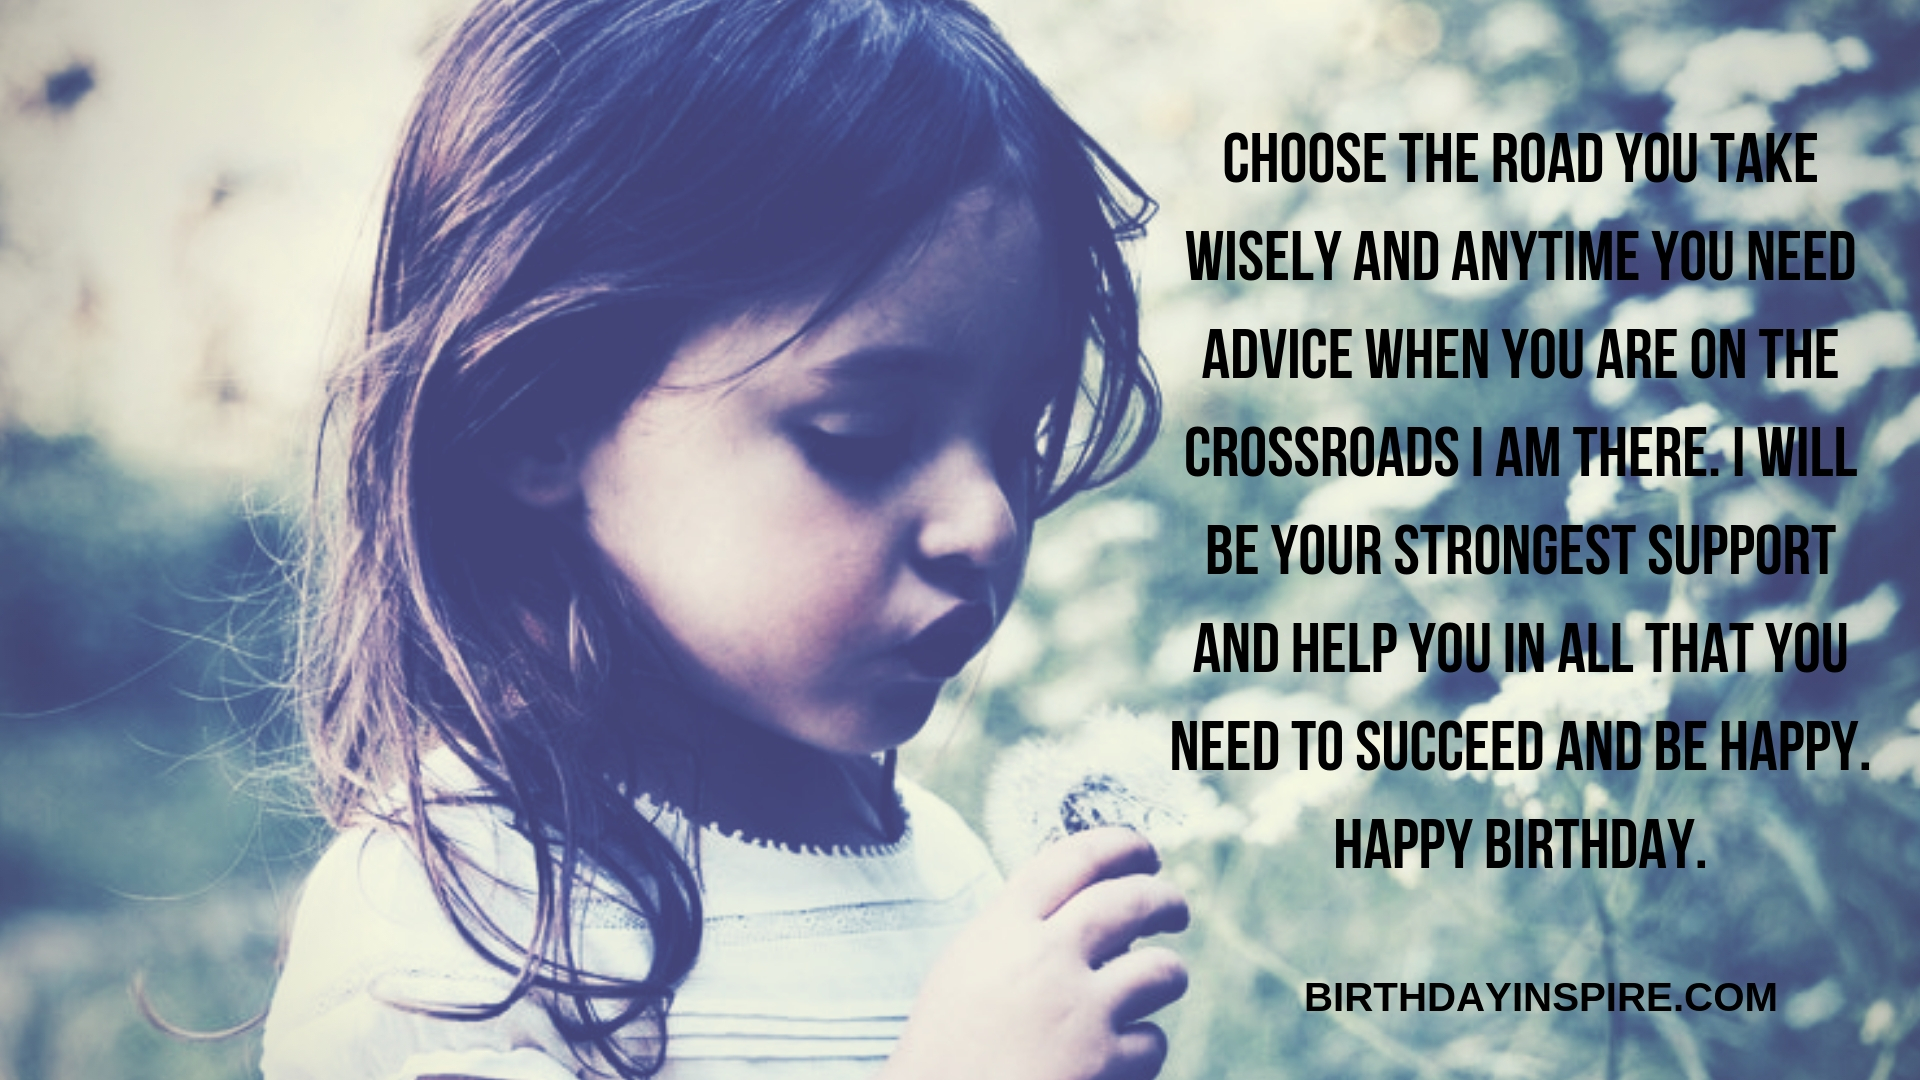 BIRTHDAY GREETINGS FOR NIECE